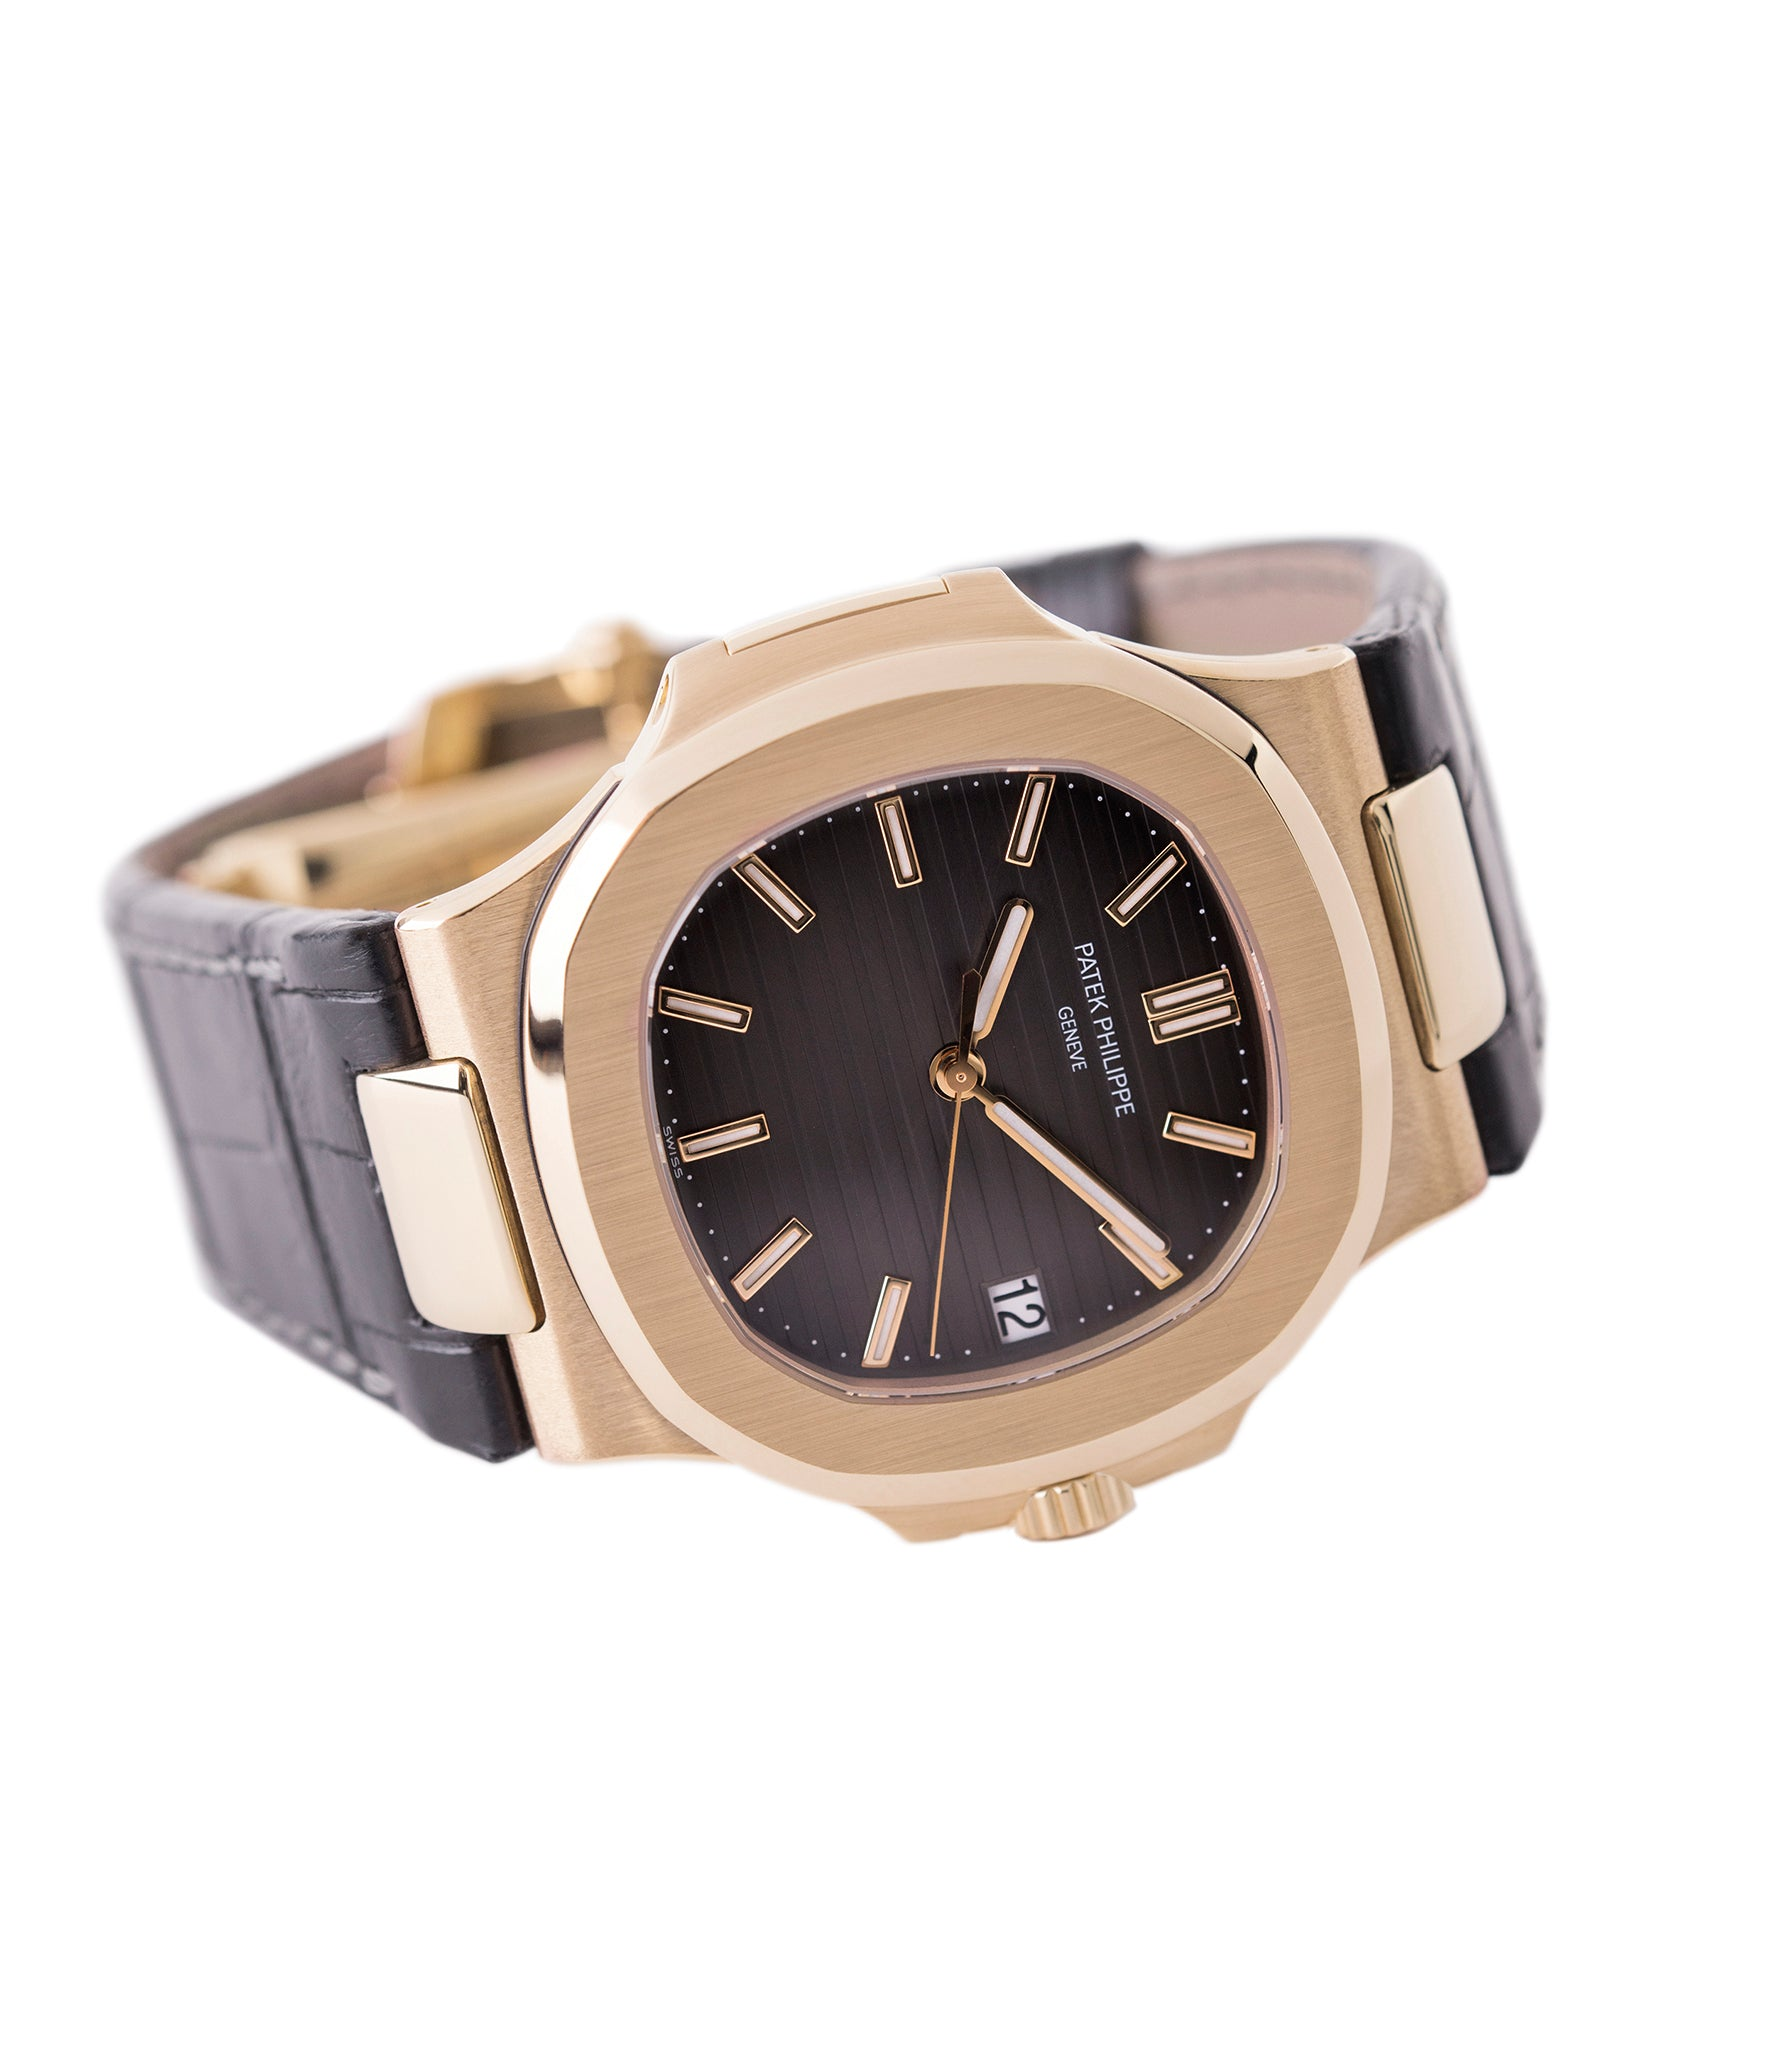 sell preowned Patek Philippe Nautilus 5711 rose gold dress watch chocolate brown dial for sale online at A Collected Man London UK specialist of rare watches